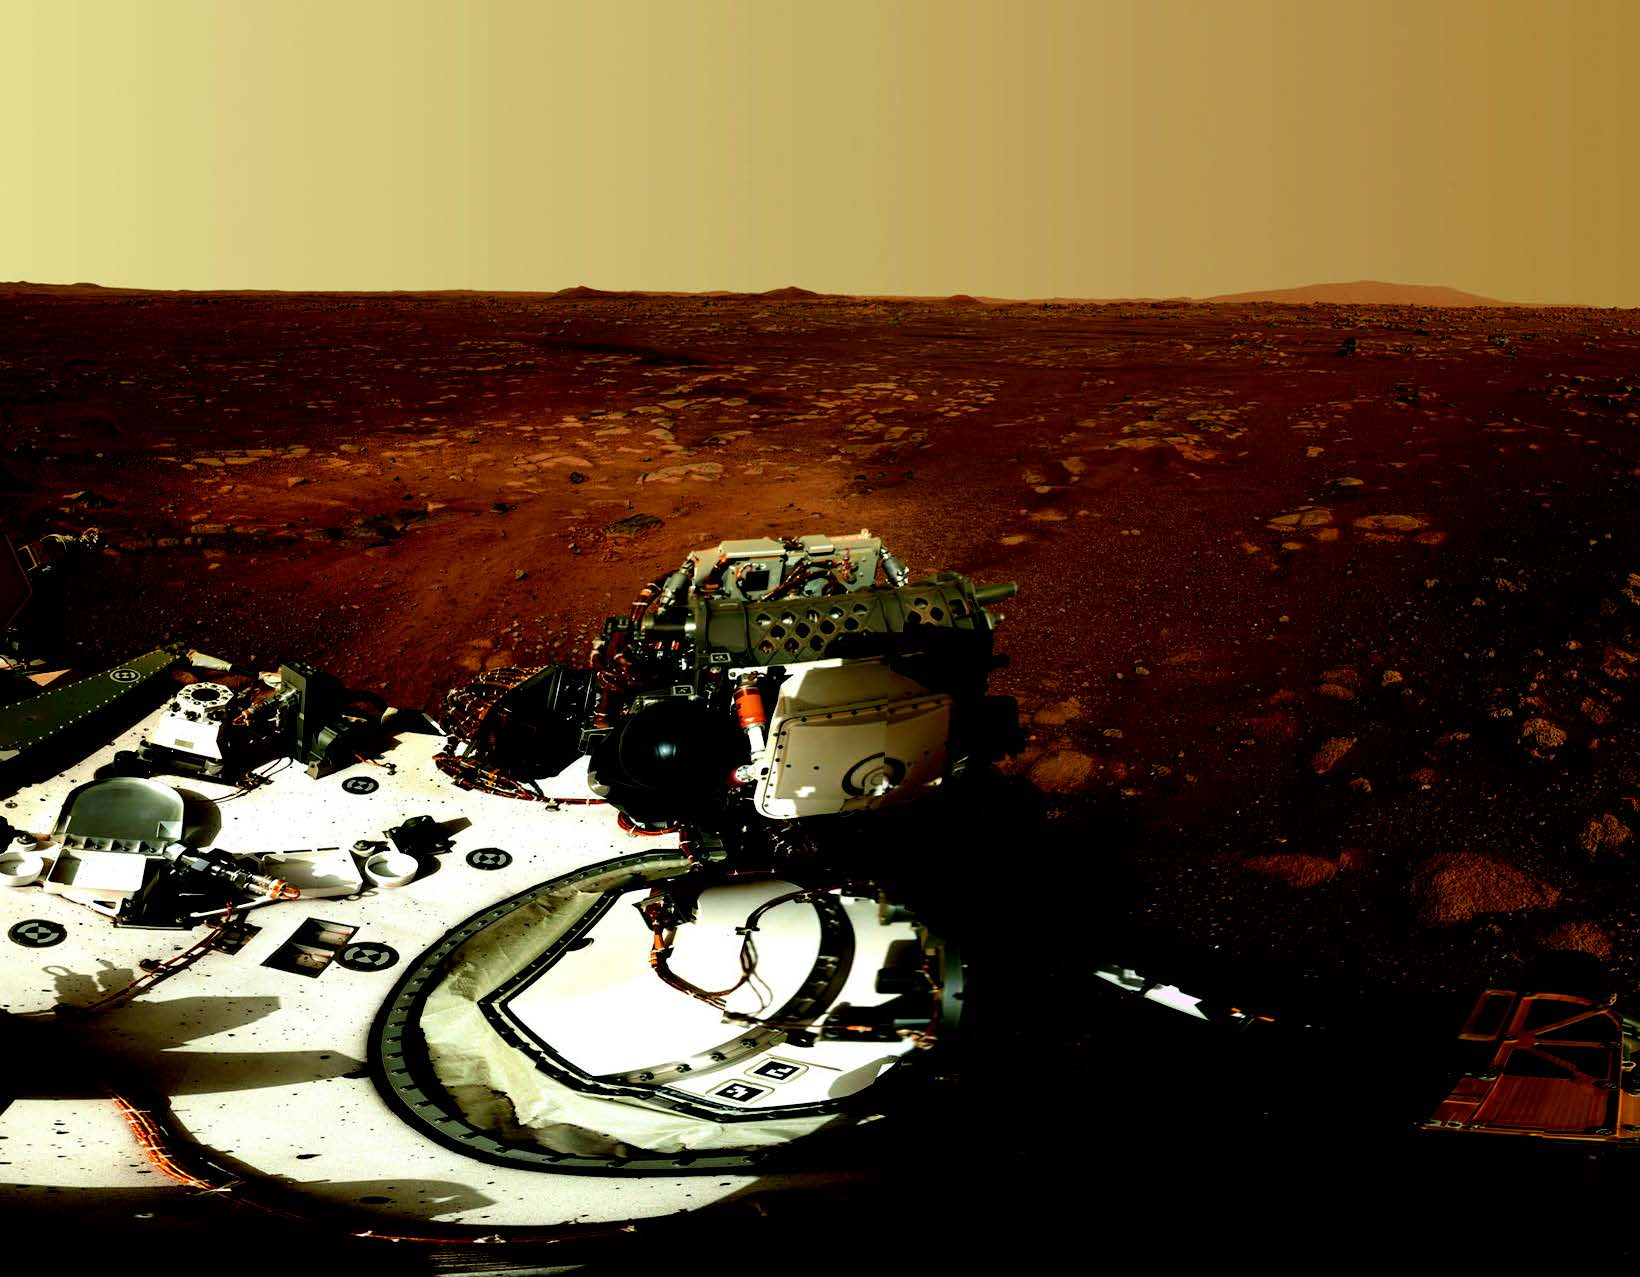 Image of Perseverance rover from Mars